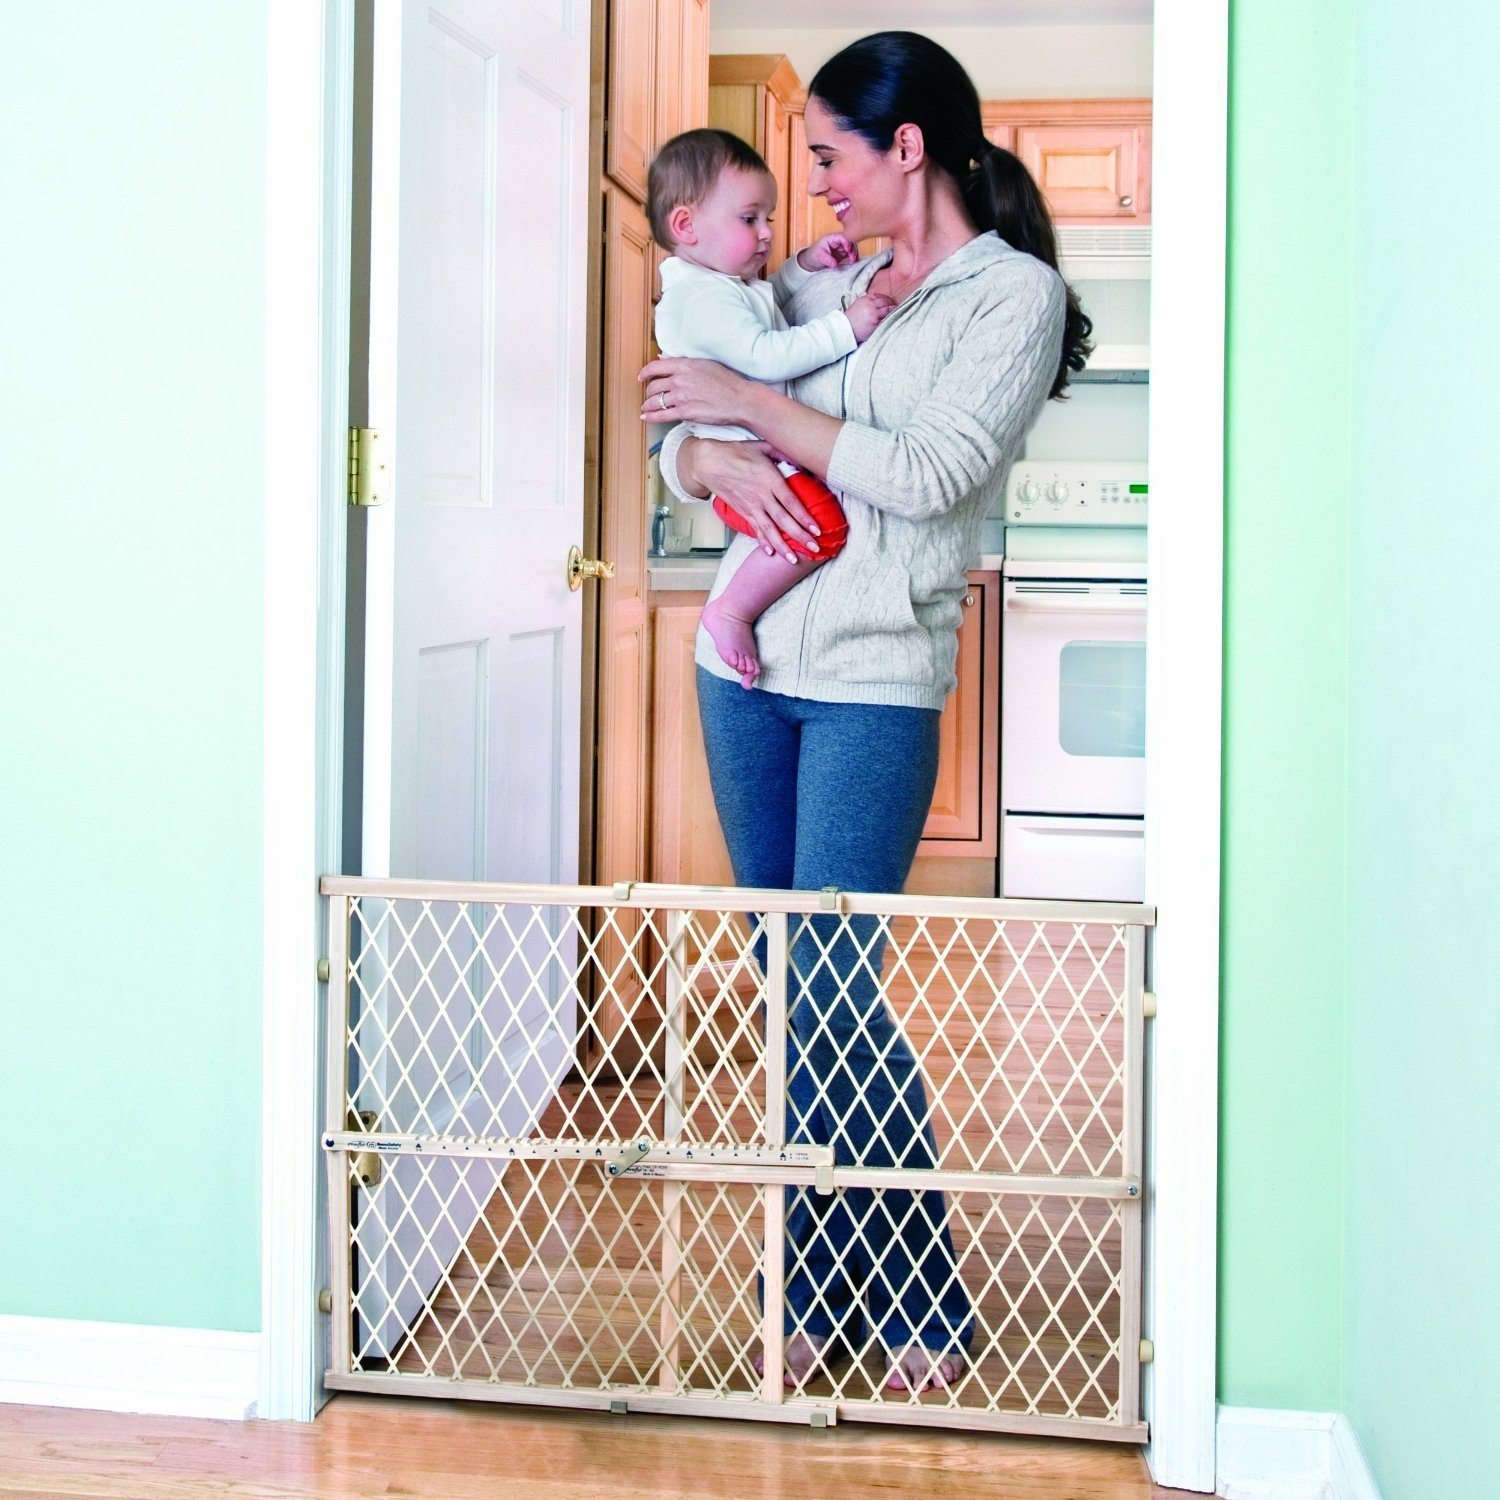 Amazon.com : Evenflo Safety Baby Gate - Adjustable Wide and Tall ...